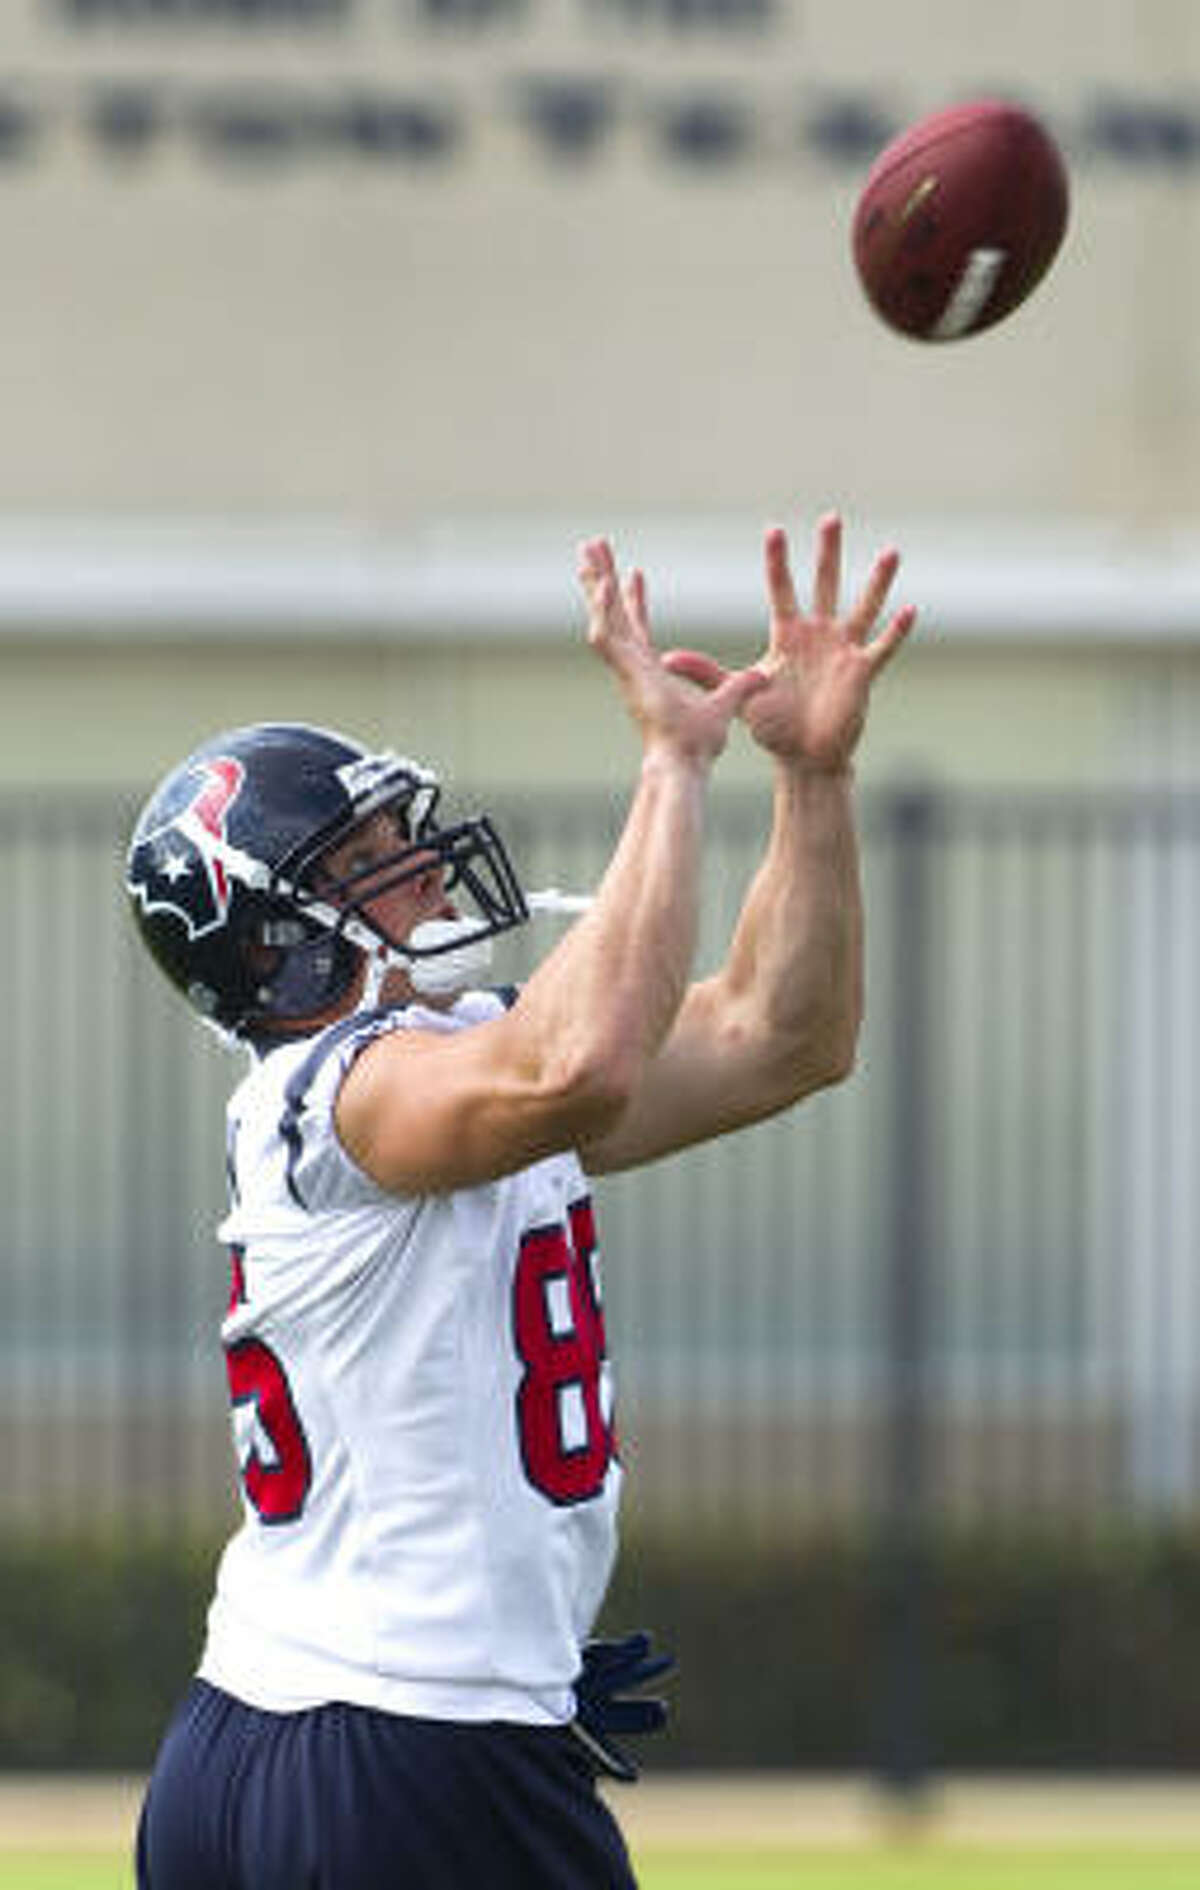 Tight end Joel Dreessen has a 'perfectionist attitude' for the Texans.